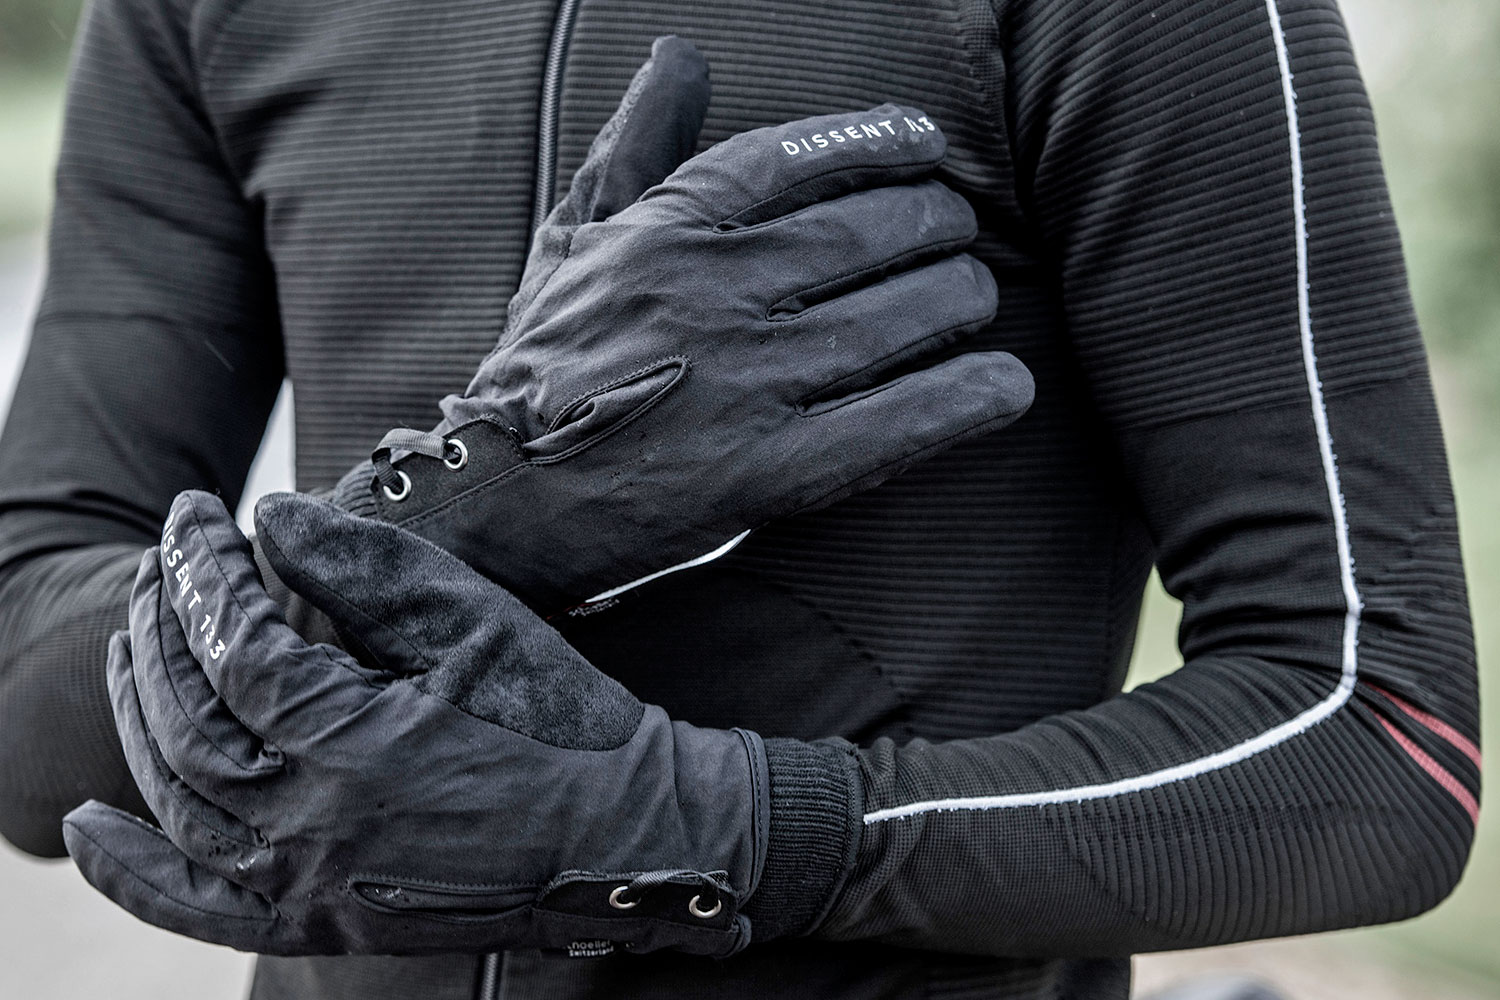 Dissent 133 by TheRiderFirm layered winter biking gloves wet cold cycling glove system